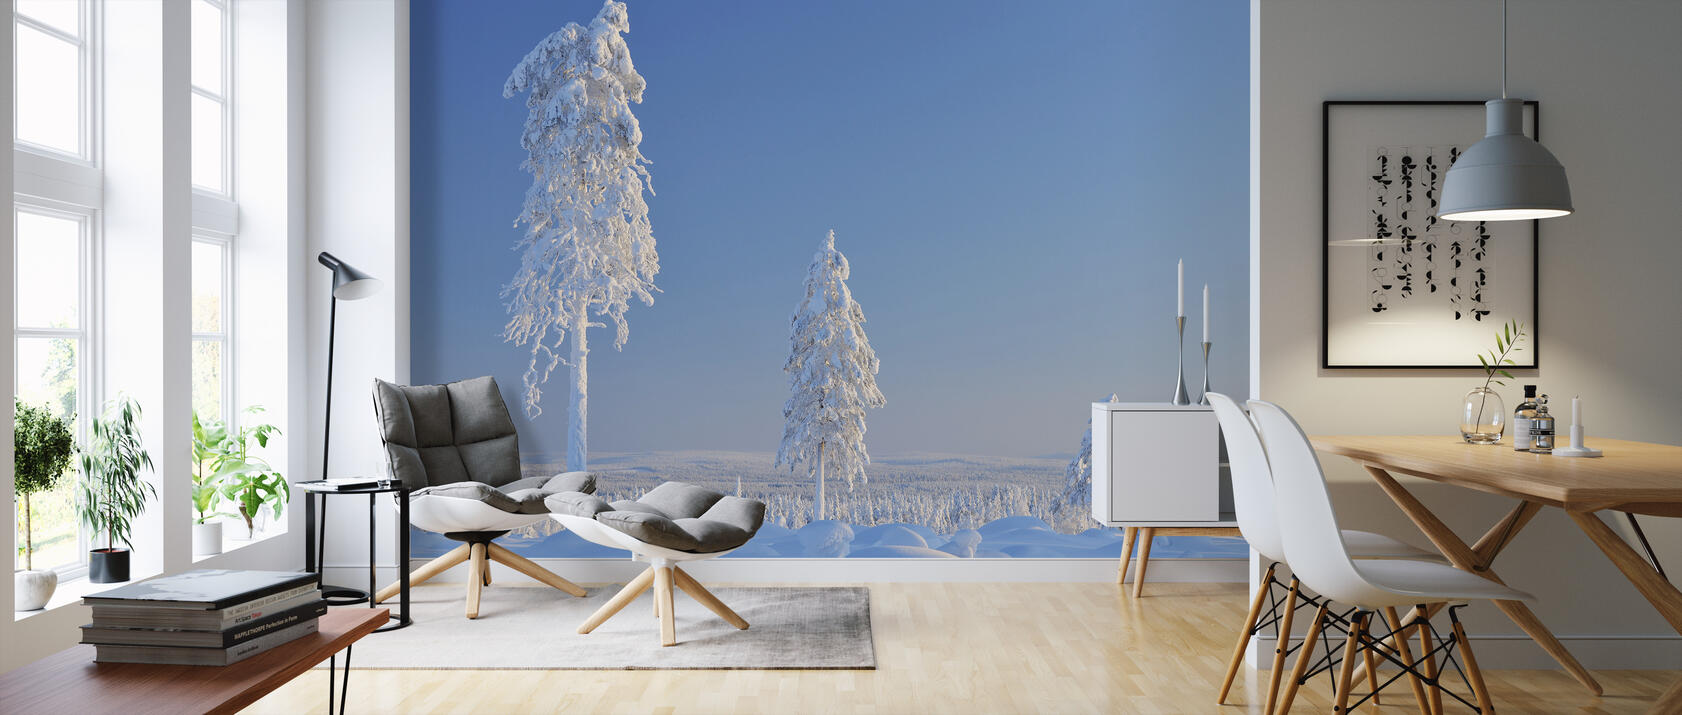 winter in finland fototapete nach ma photowall. Black Bedroom Furniture Sets. Home Design Ideas